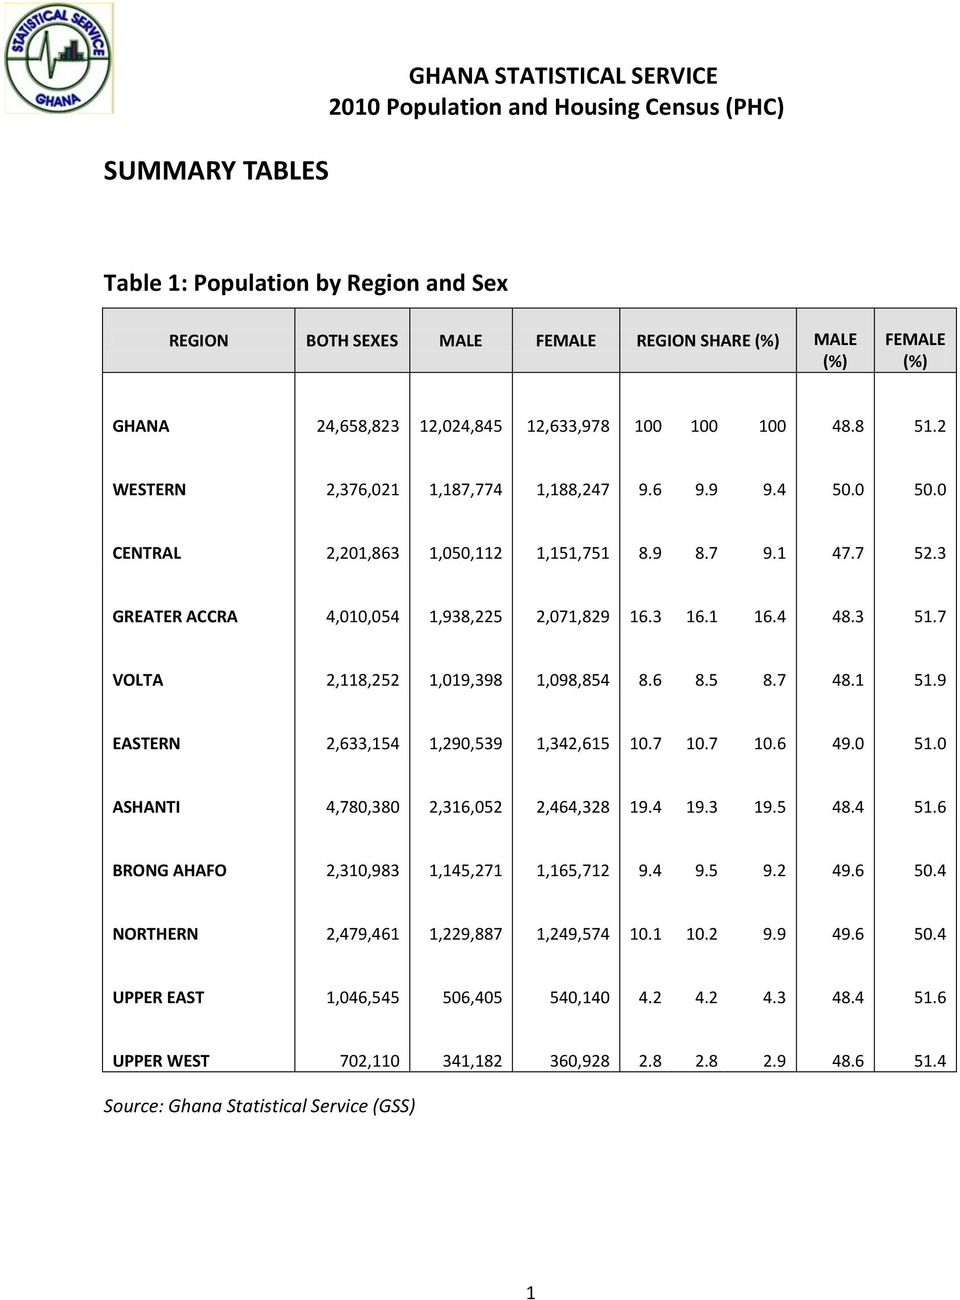 Chnts winneba array 2010 population and housing census final results ghana statistical rh docplayer net fandeluxe Images